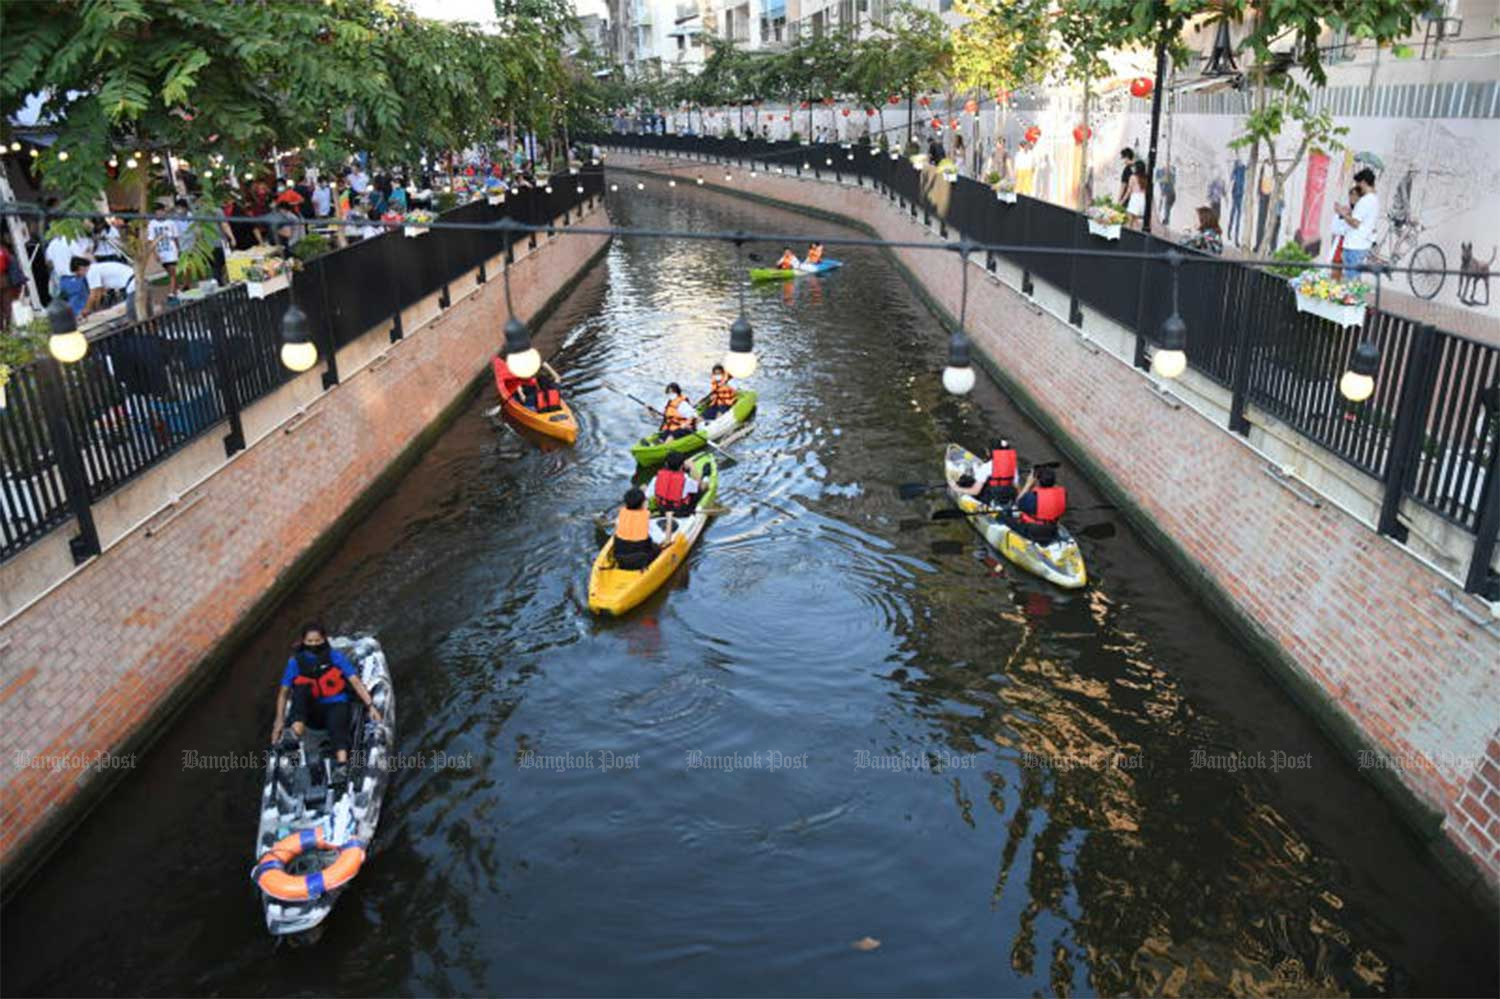 People wearing face masks paddle on Khlong Ong Ang canal in Bangkok. City Hall resumes the service along the canal on Friday after the Covid-19 pandemic situation shows sign of improvement. (Photo: Nutthawat Wicheanbut)